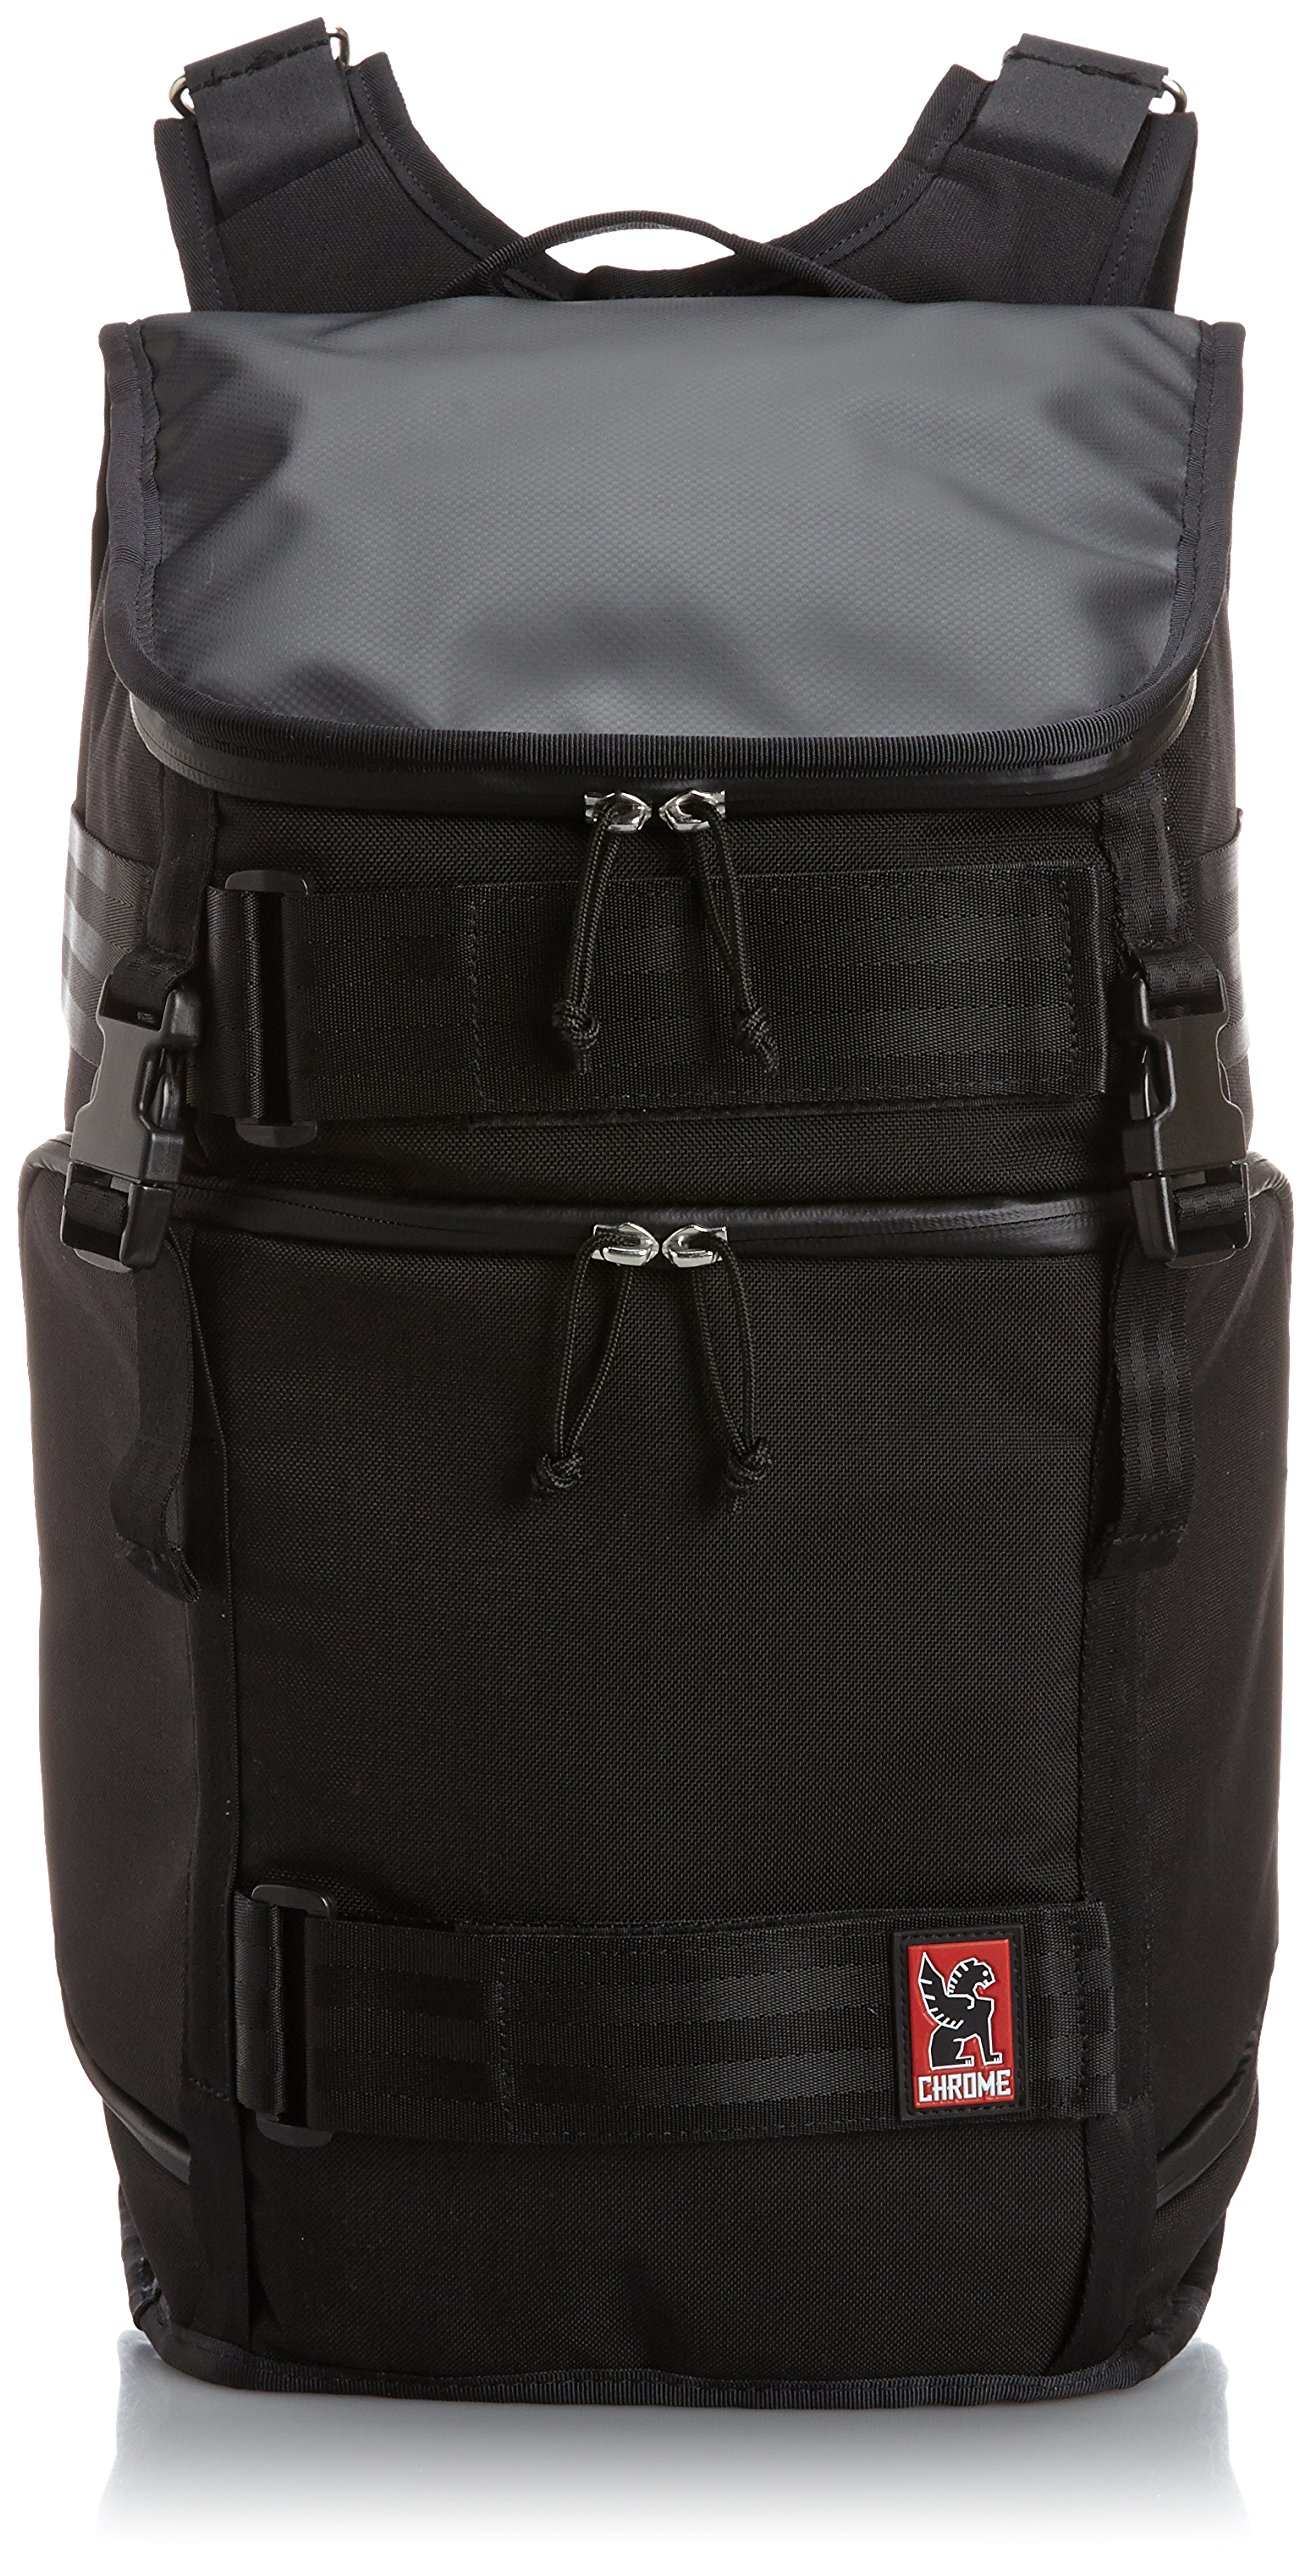 Chrome BG-153-BK Black 26L Niko Pack Backpack by Chrome